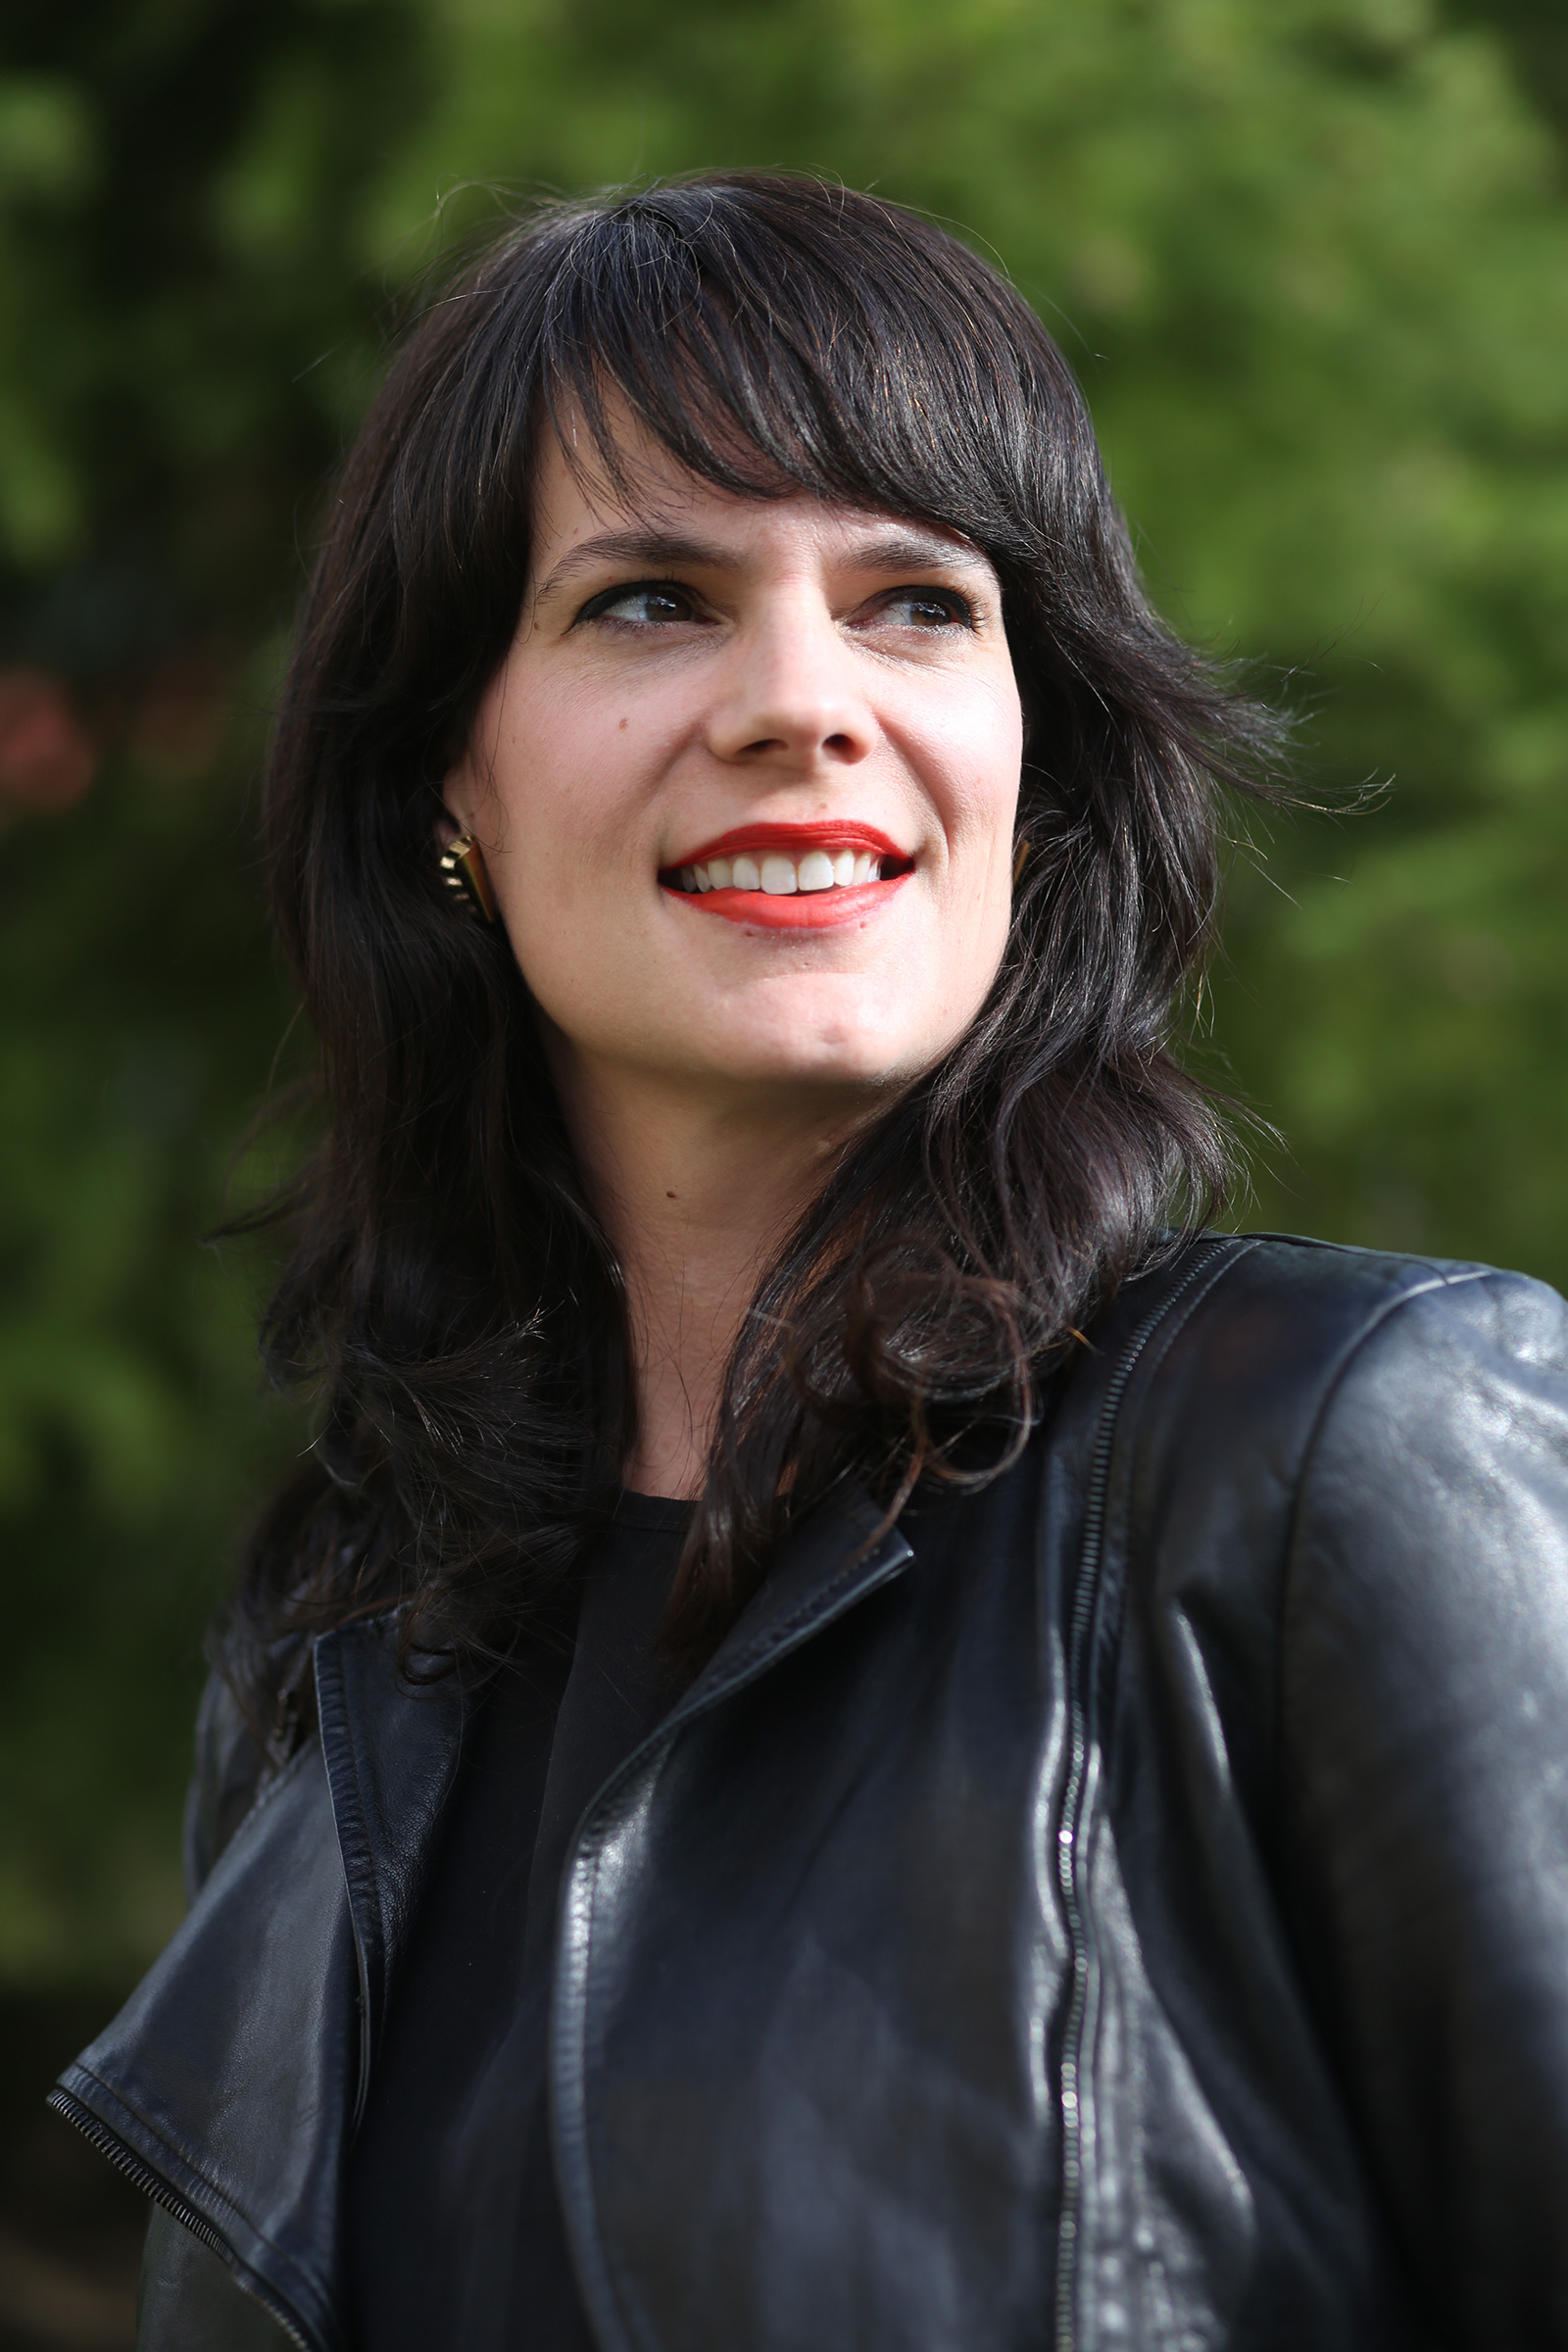 photo of author Elizabeth Cline, a white woman with shoulder-length, dark brown hair, standing outside wearing a red lipstick, a black leather jacket and t-shirt, smiling and looking to the side.